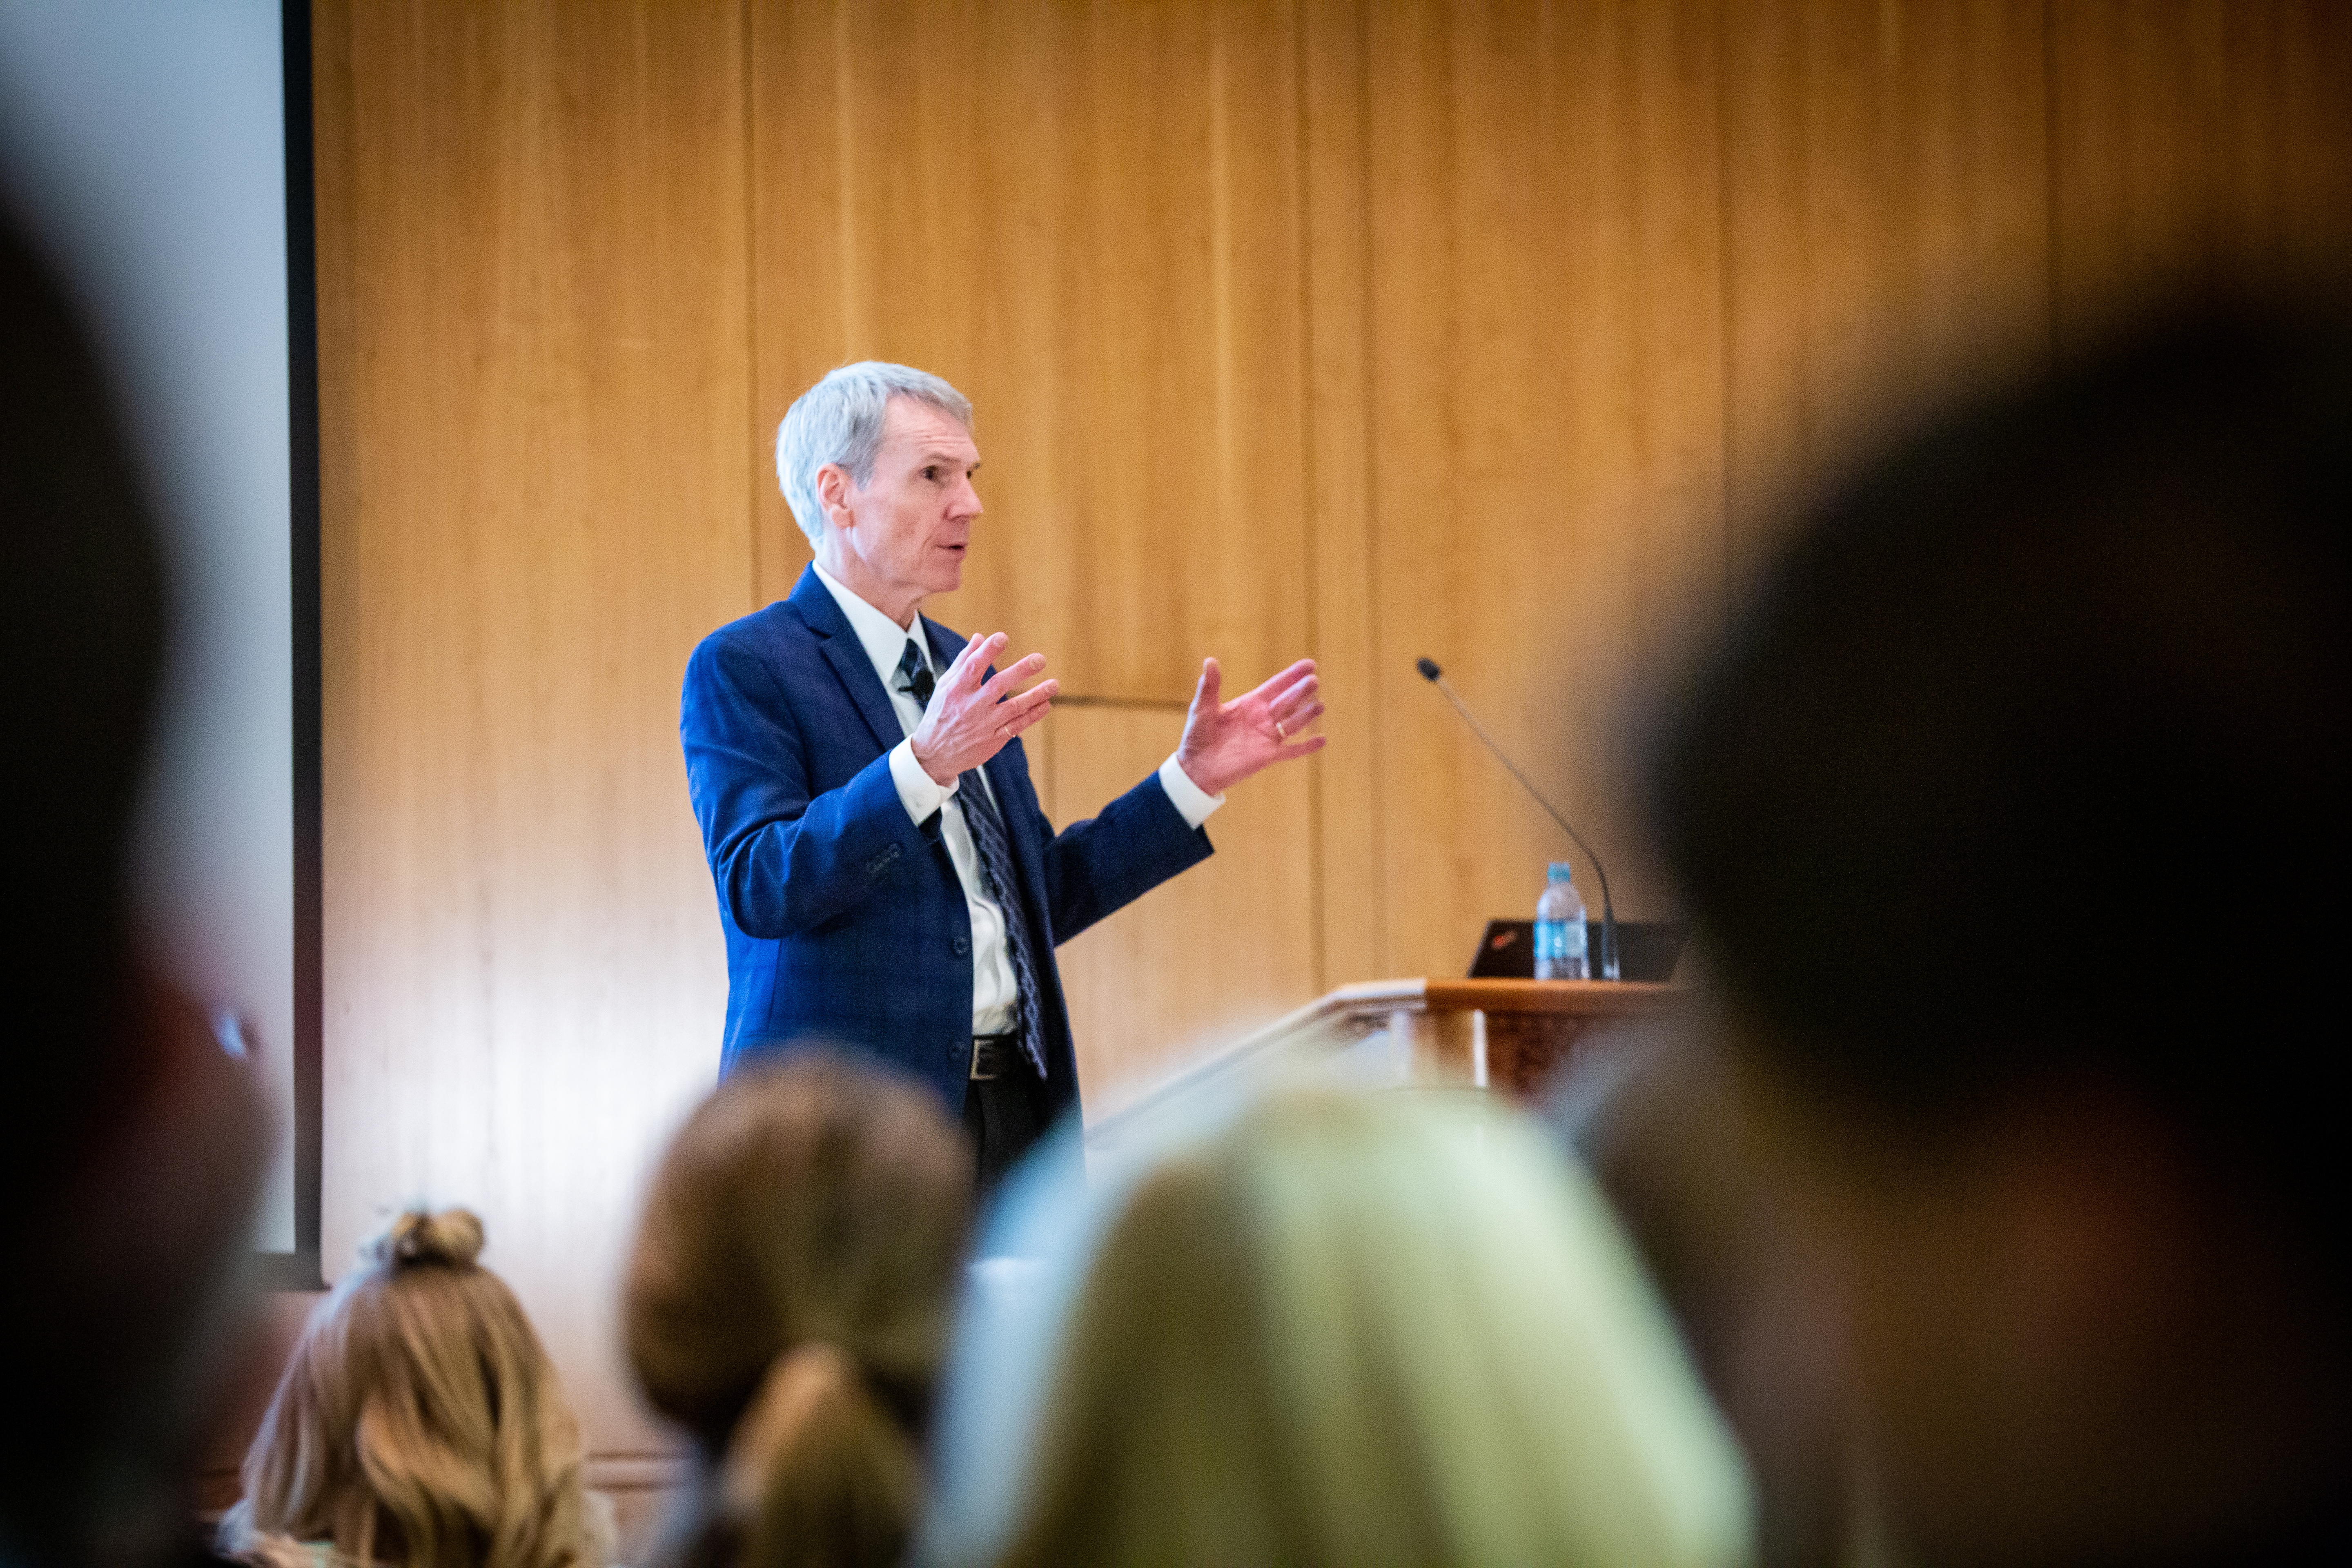 Dr. Scott Stanley of the University of Denver speaks to students, alumni and faculty during the 15th Annual Marjorie Pay Hinckley Lecture on Feb. 7, 2019 on the BYU Provo, Utah campus.